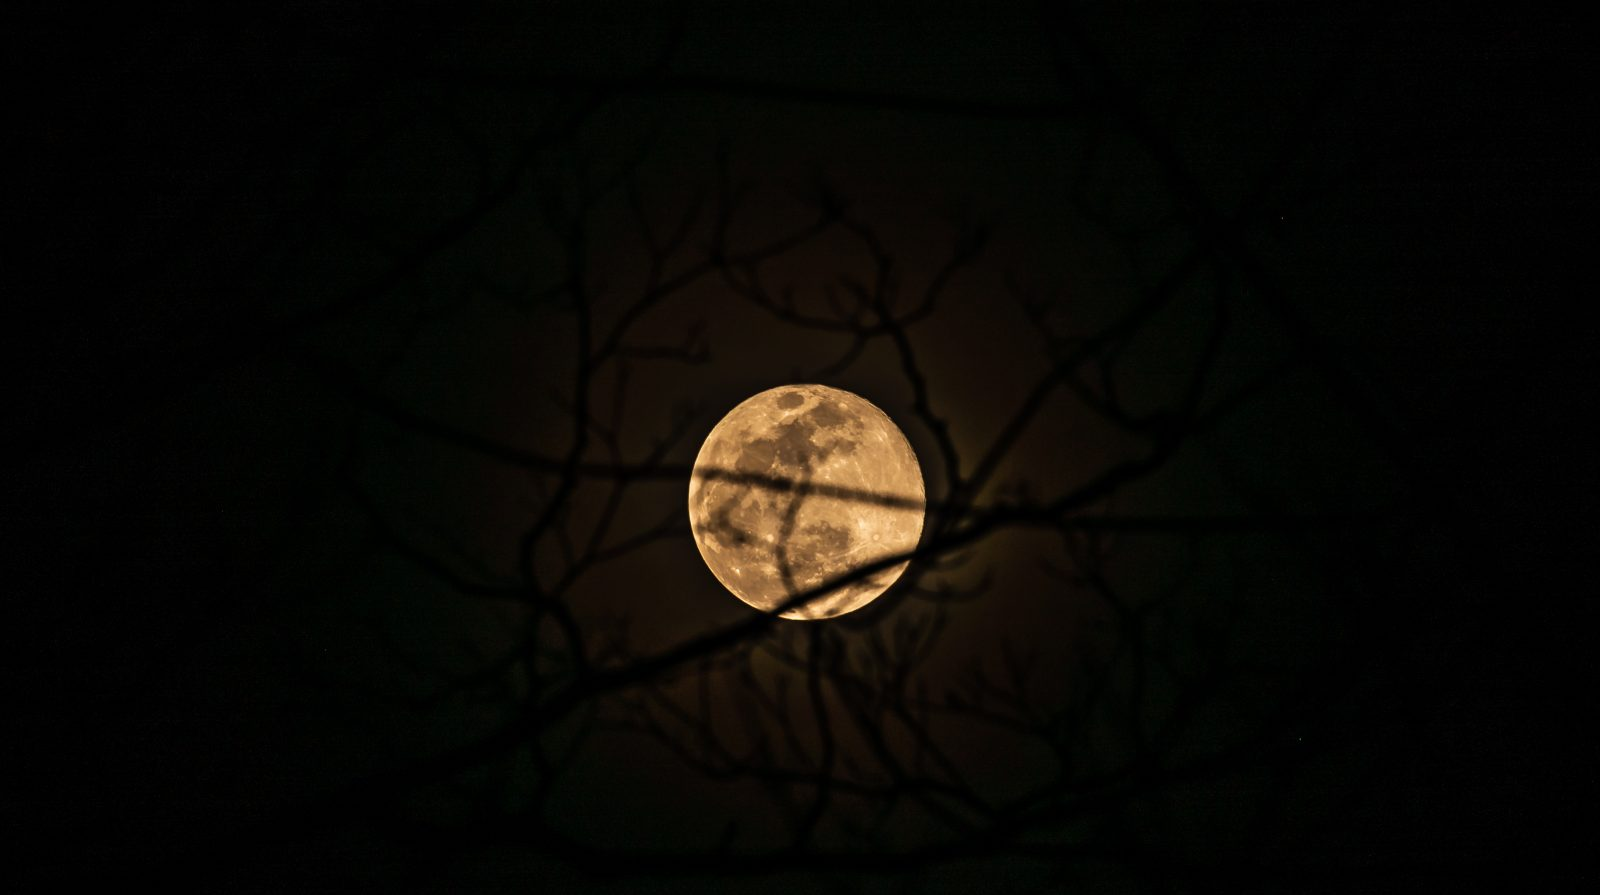 Super Moon of February 2019